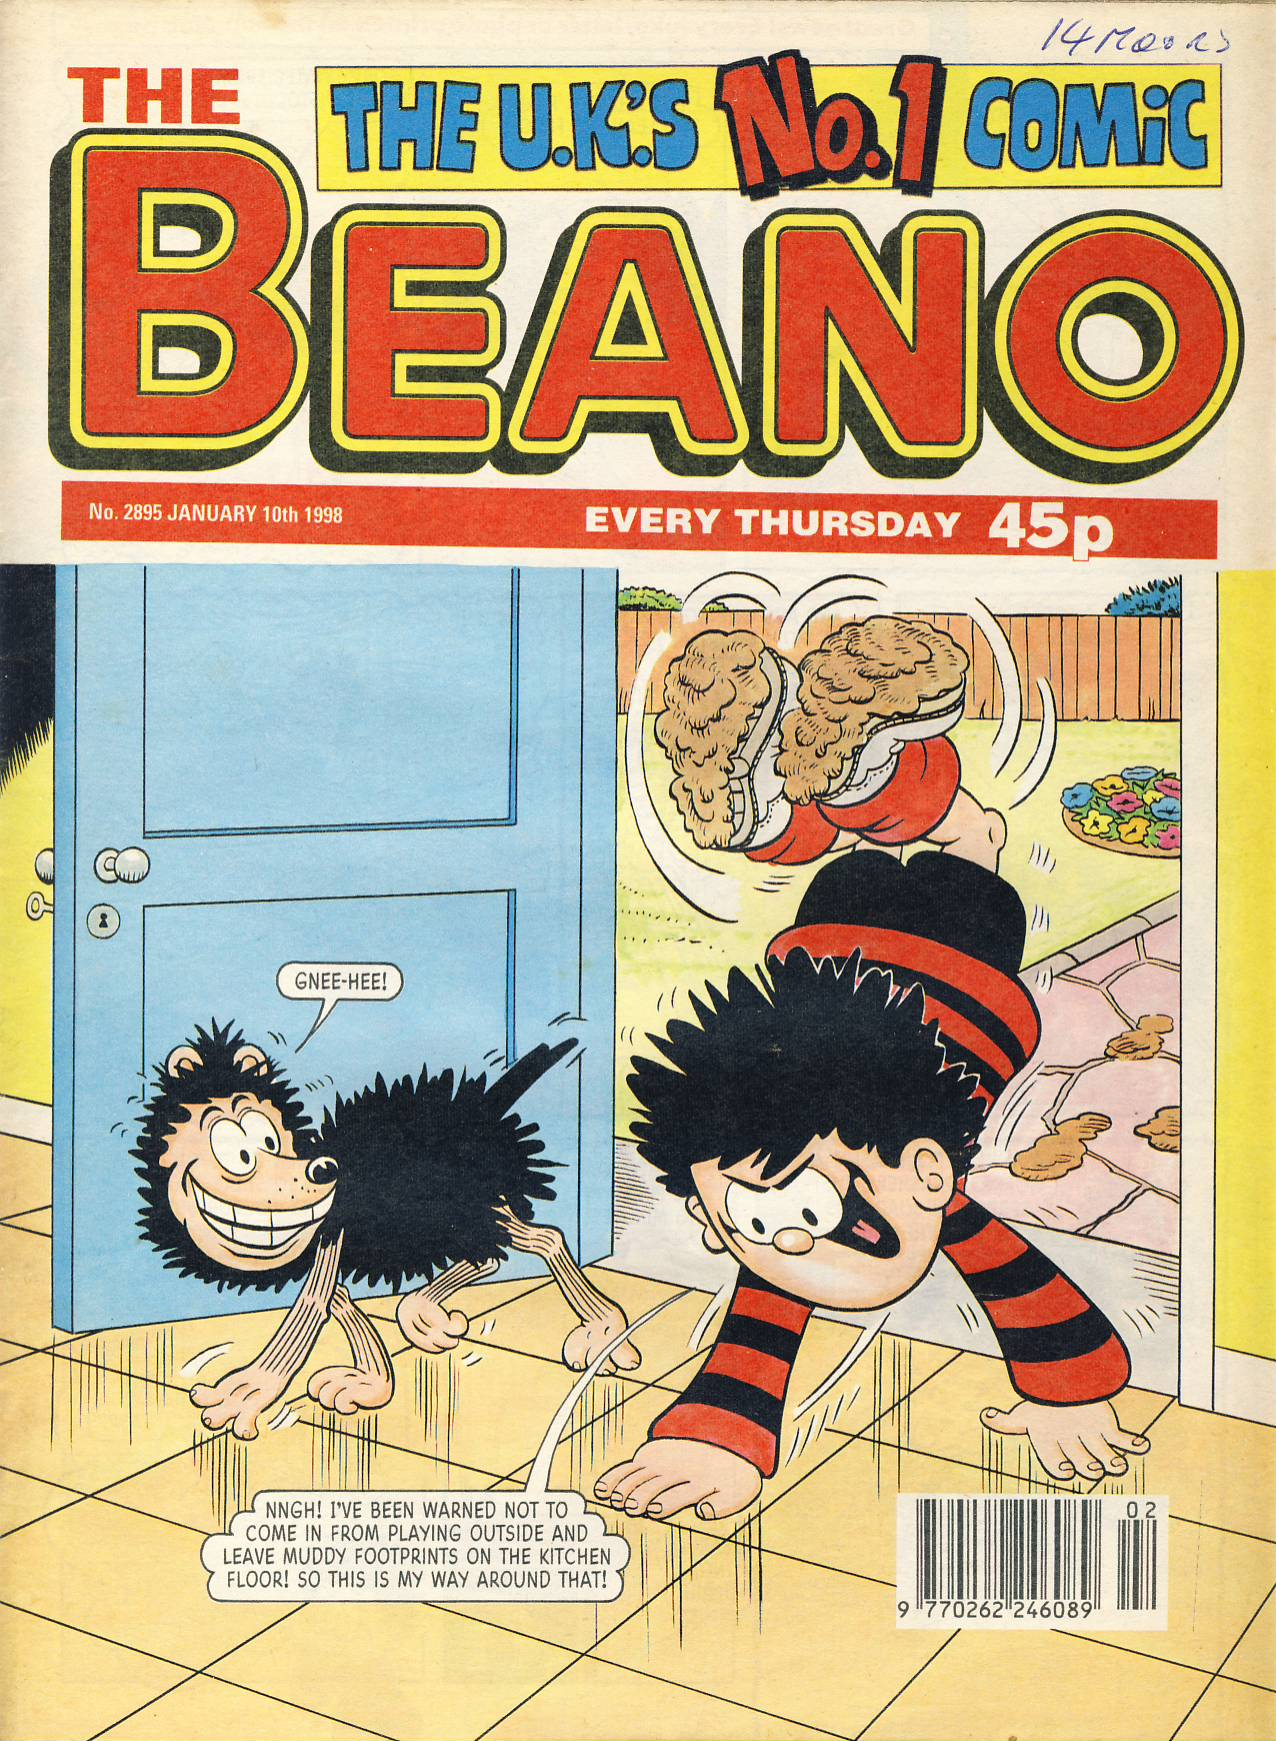 1998 January 10th BEANO vintage comic Good Gift Christmas Present Birthday Anniversary ref260 a pre-owned item in very good read condition.